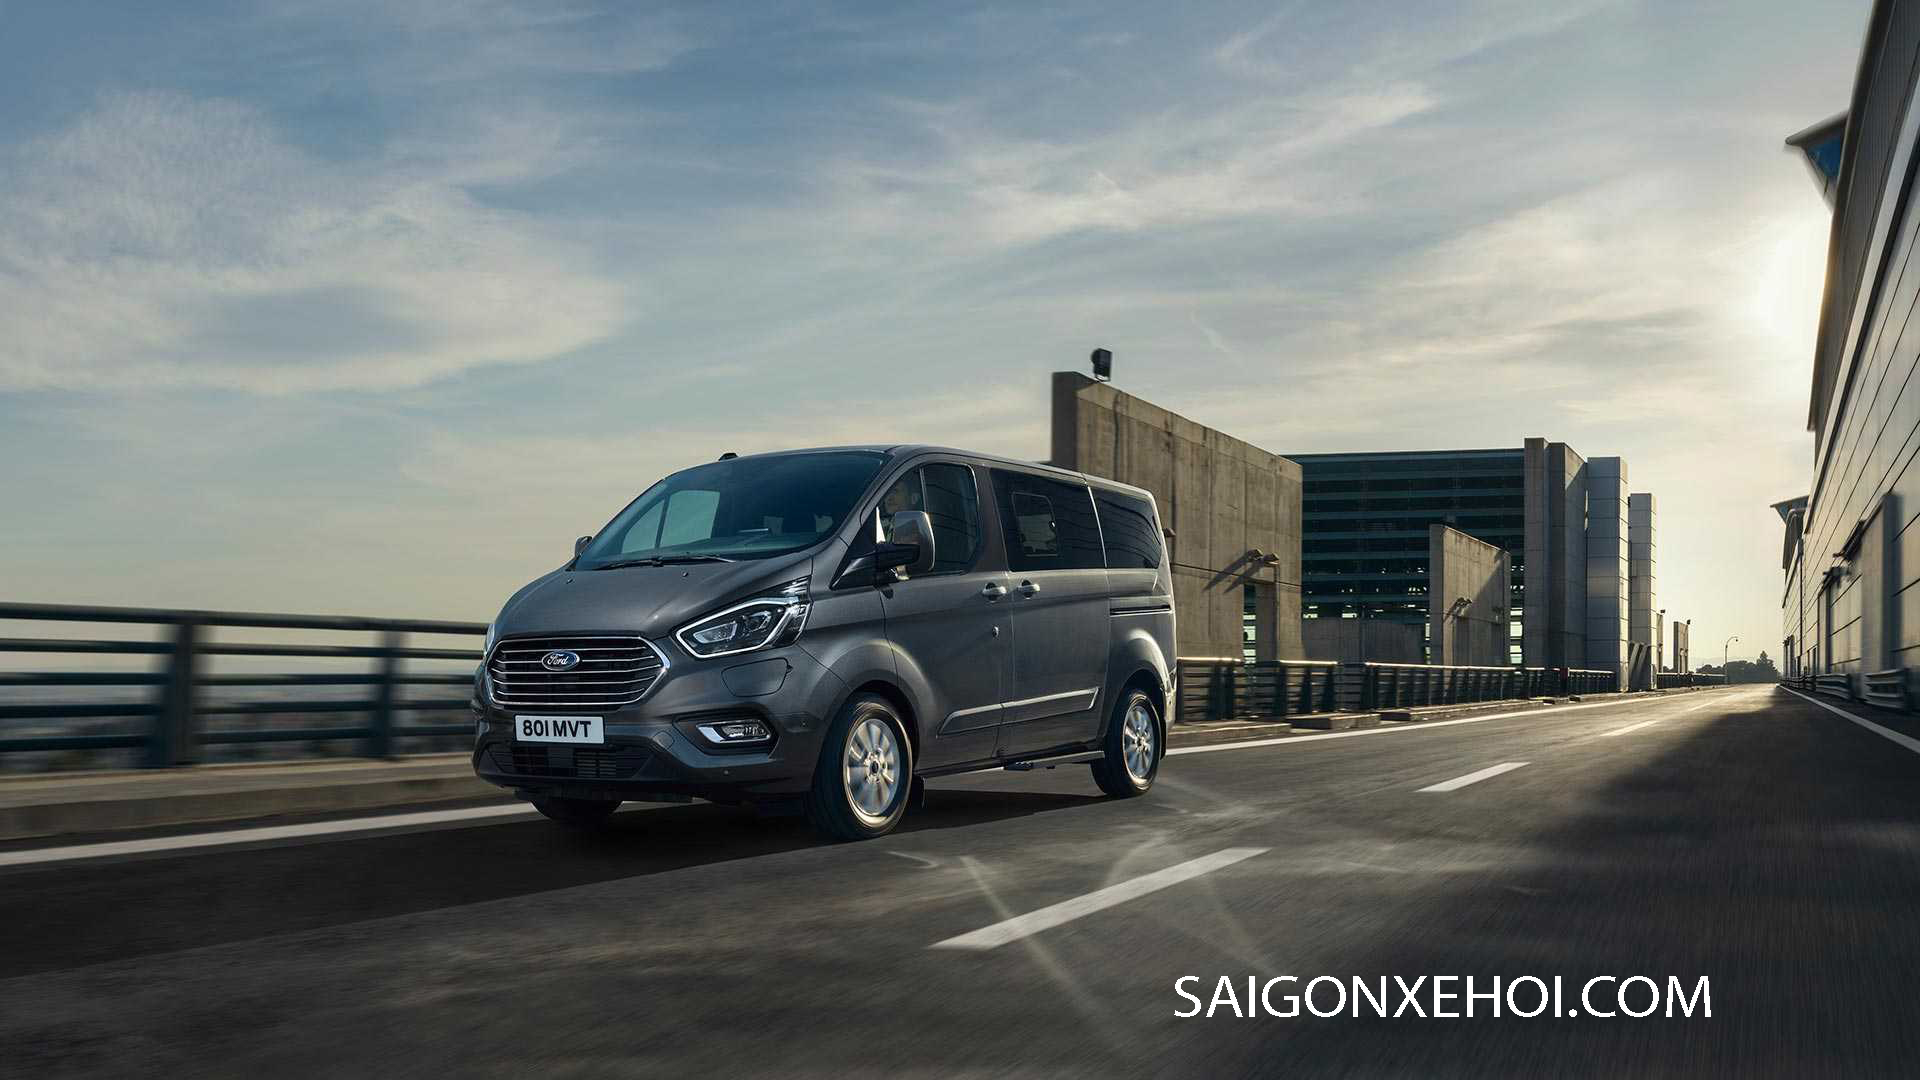 Giá xe ford tourneo 2020